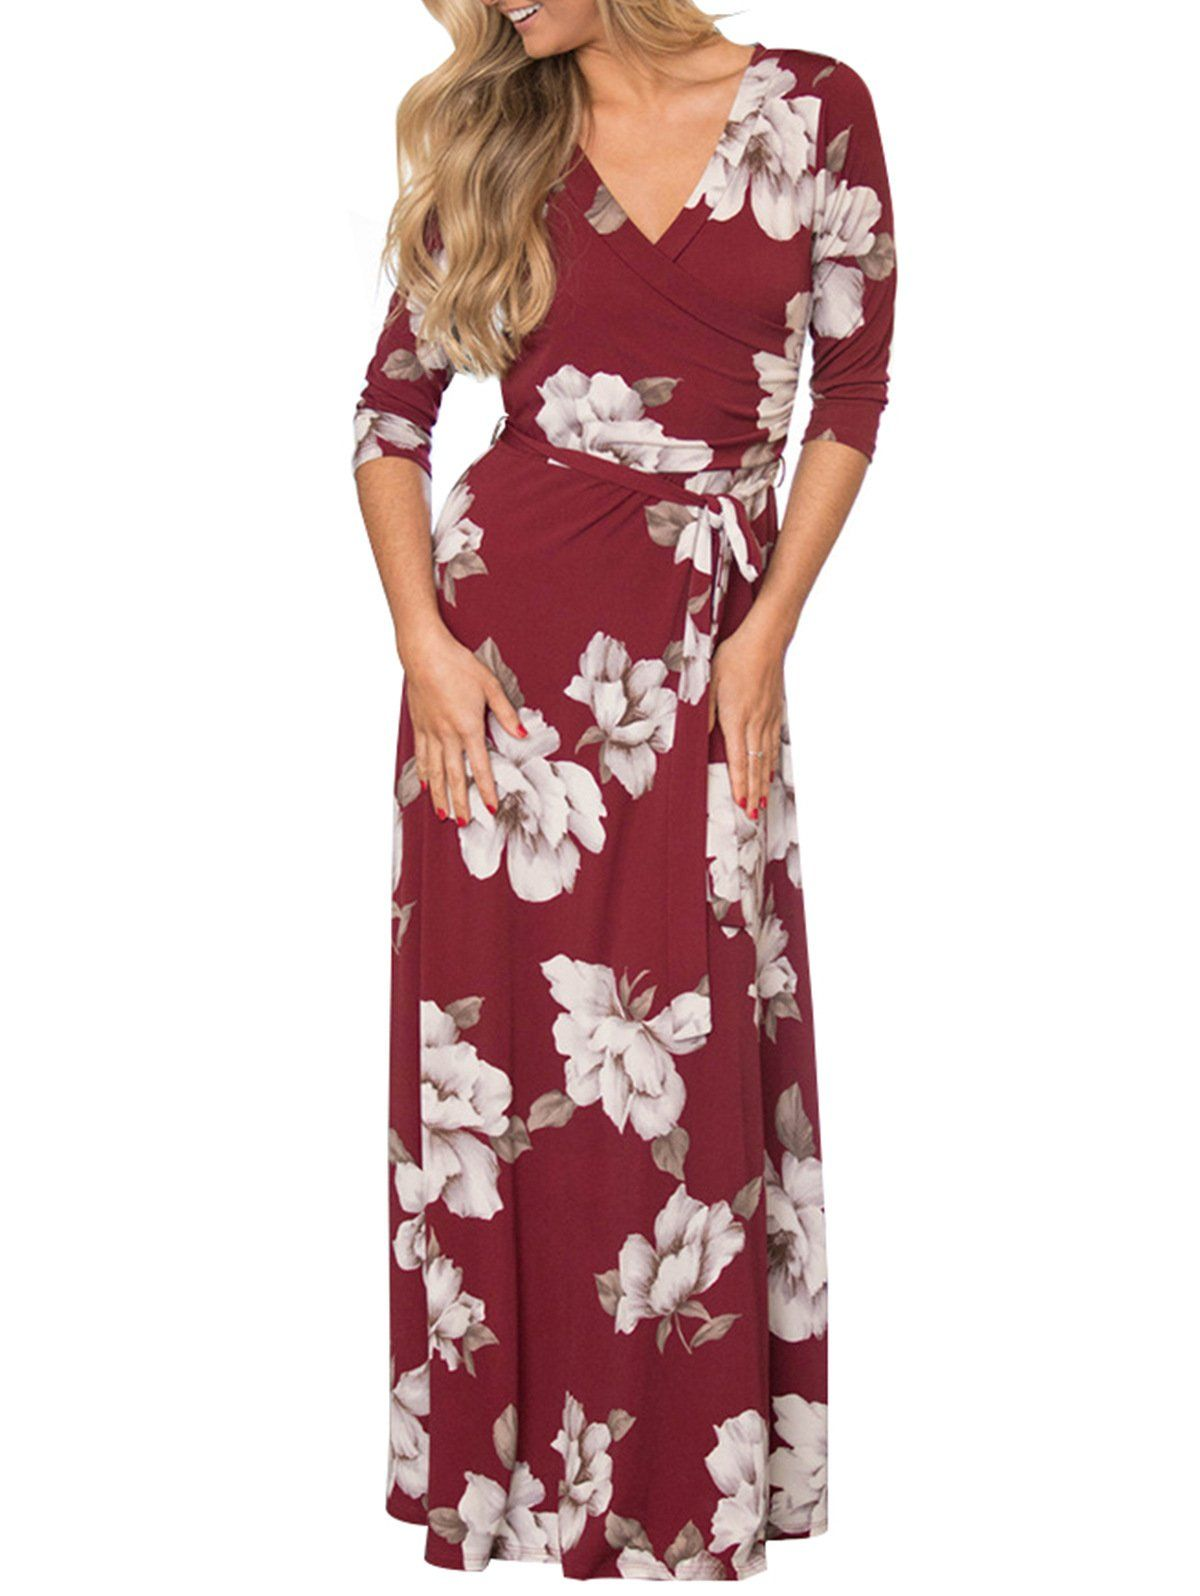 Temofon Womens Summer Floral Faux Wrap Maxi Dresses Vneck 3 4 Sleeve Long Beach Party Bohemian Dress Wine Red S Learn More At The Photo Link This Is An Aff [ 1596 x 1200 Pixel ]